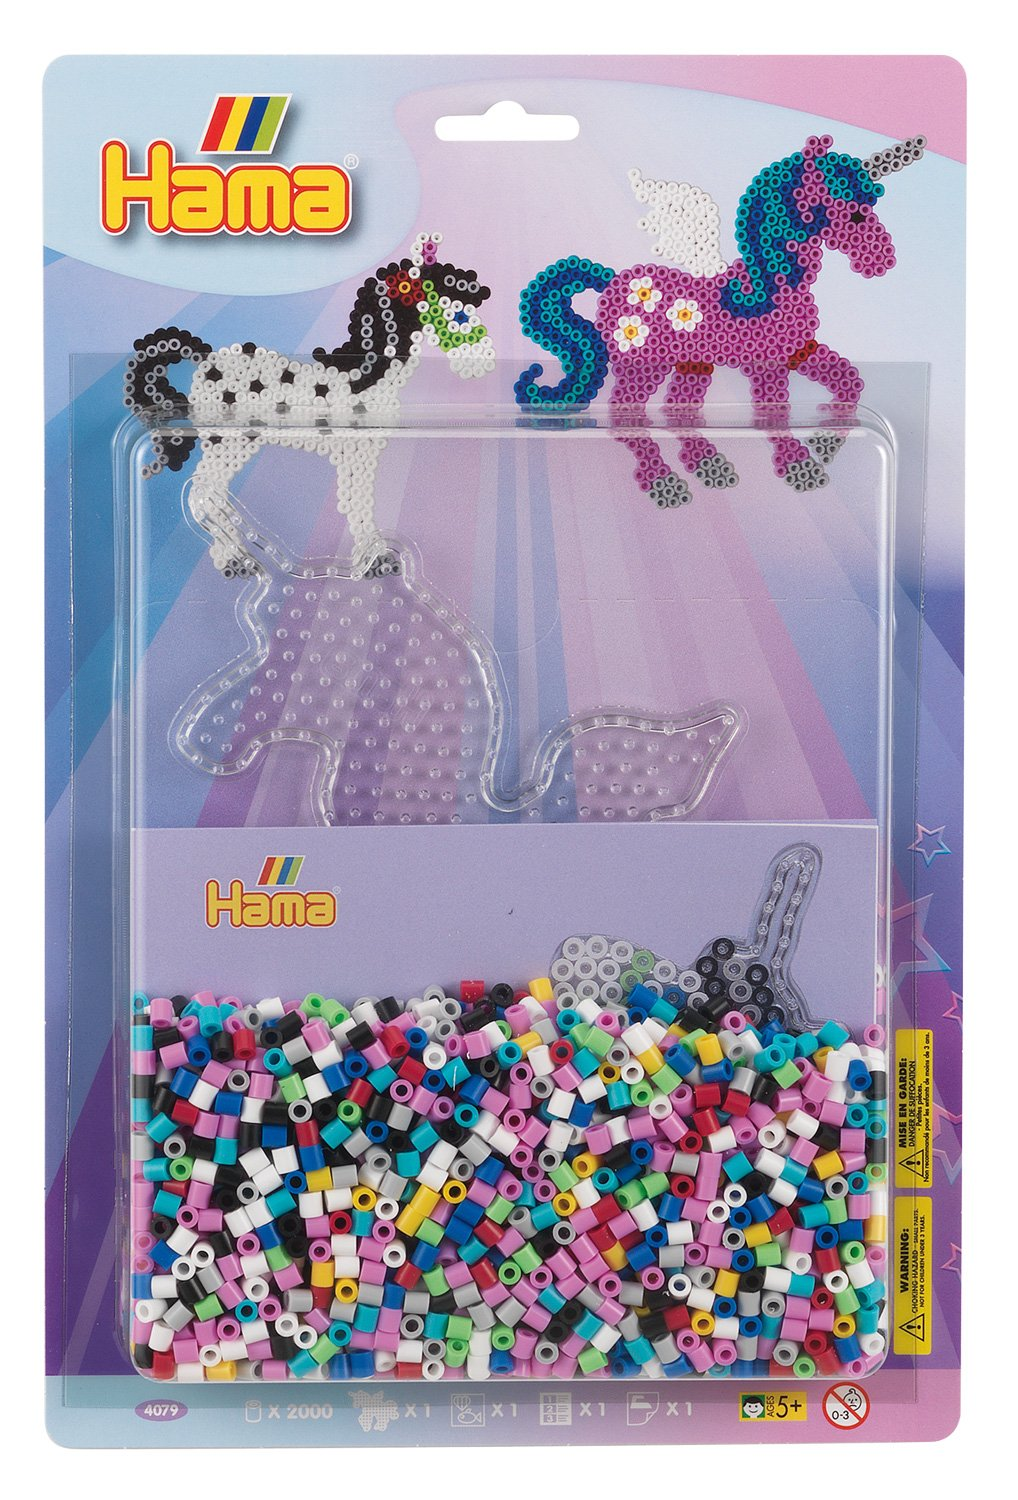 Hama Beads Unicorn Activity Kit 4079